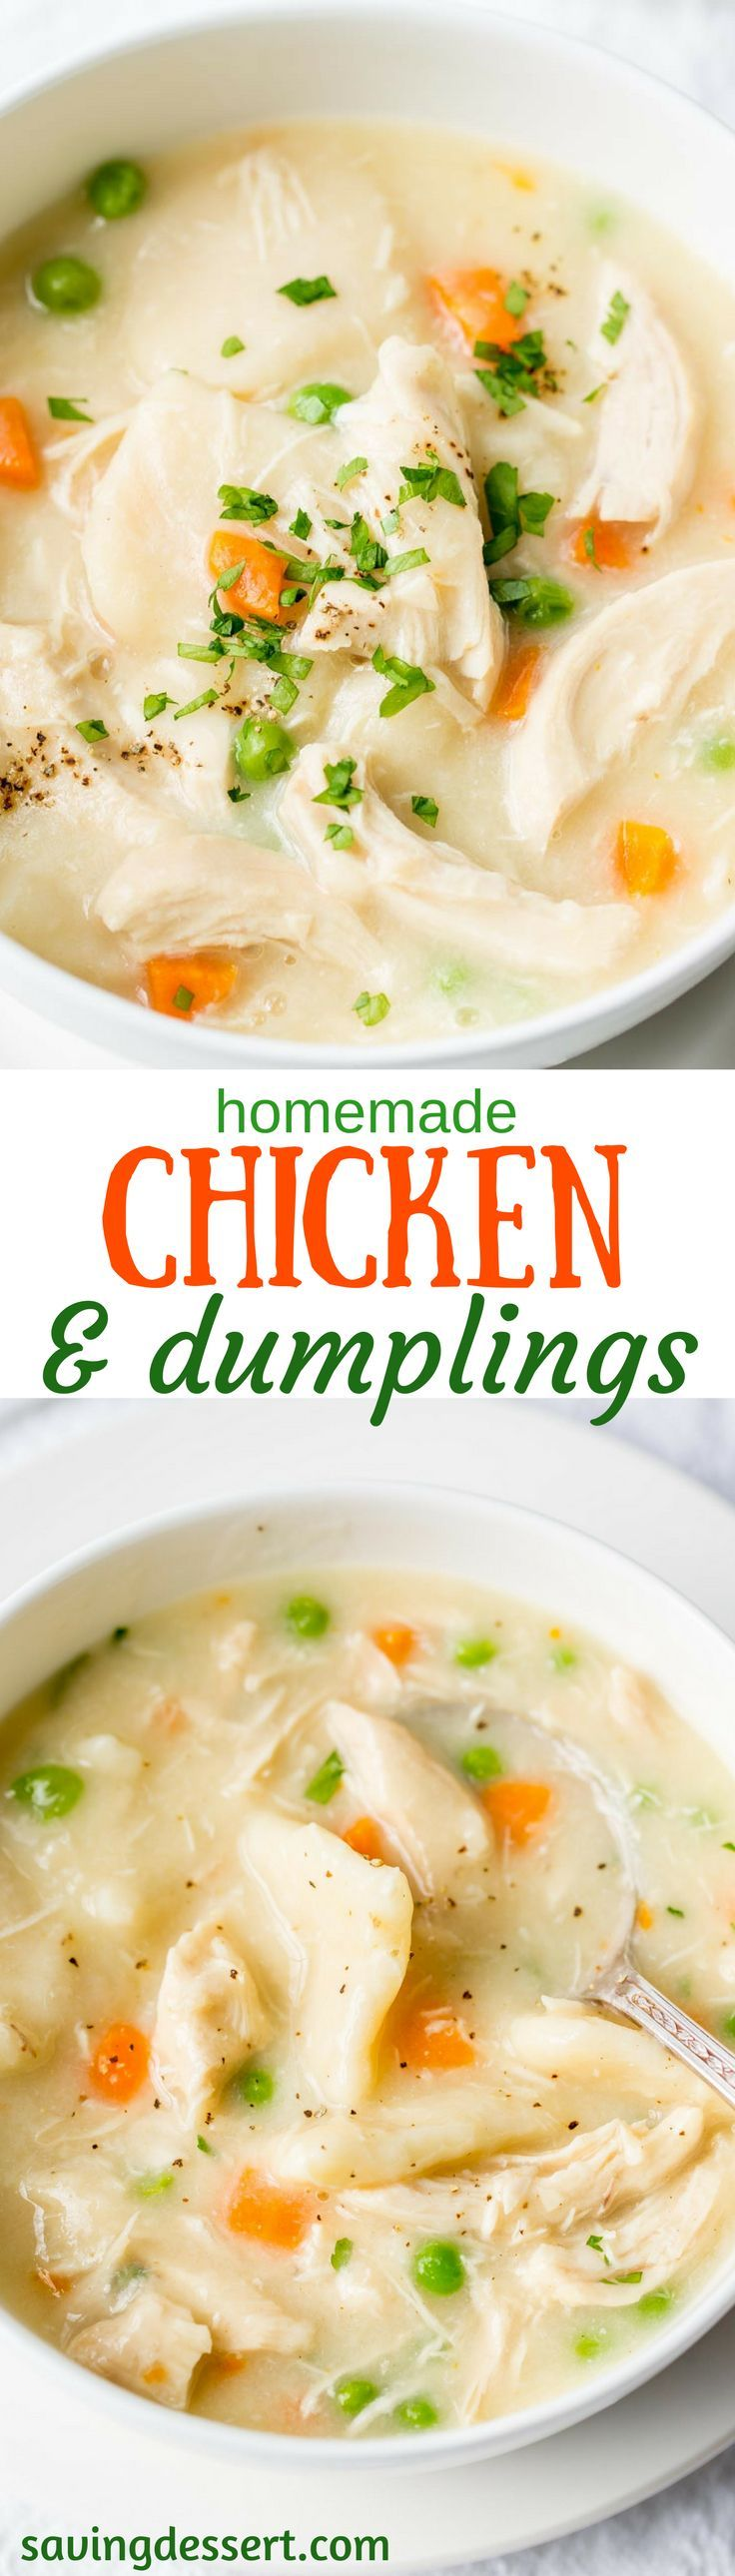 Homemade Chicken and Dumplings ~ a deliciously rich homemade chicken stock is used for the base of this warming, healing pot of pure southern comfort food.